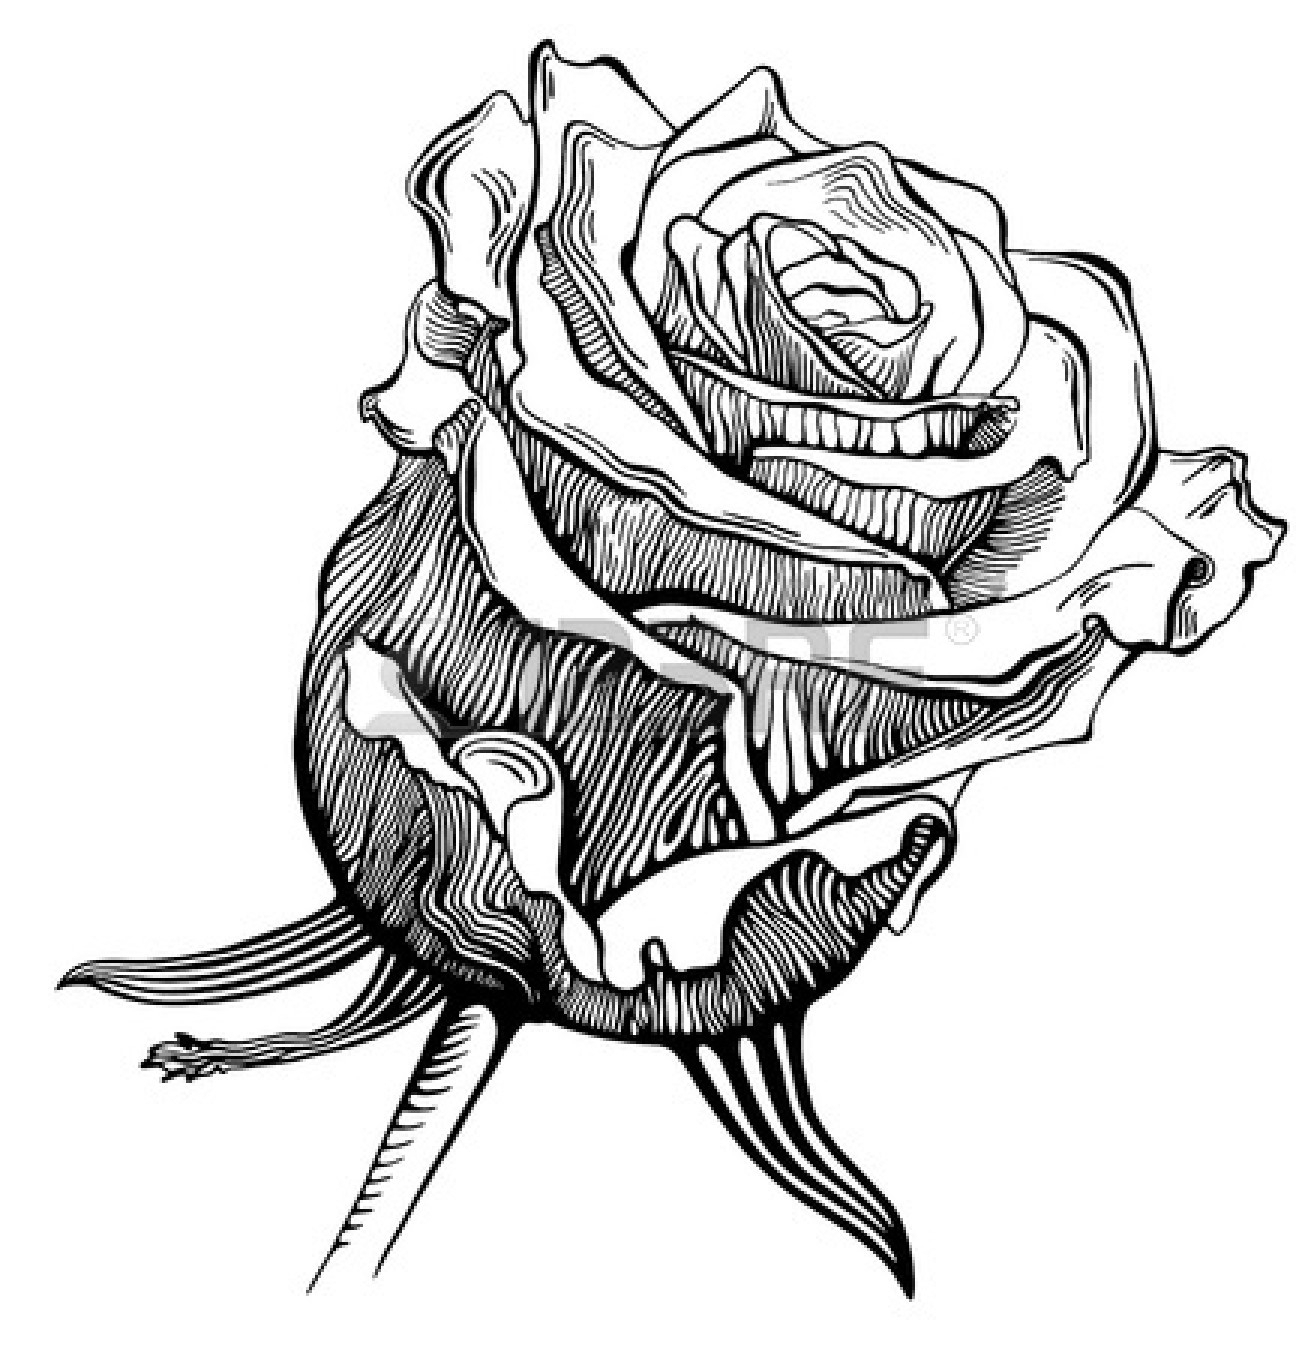 rose drawing clip art at getdrawings com free for personal use